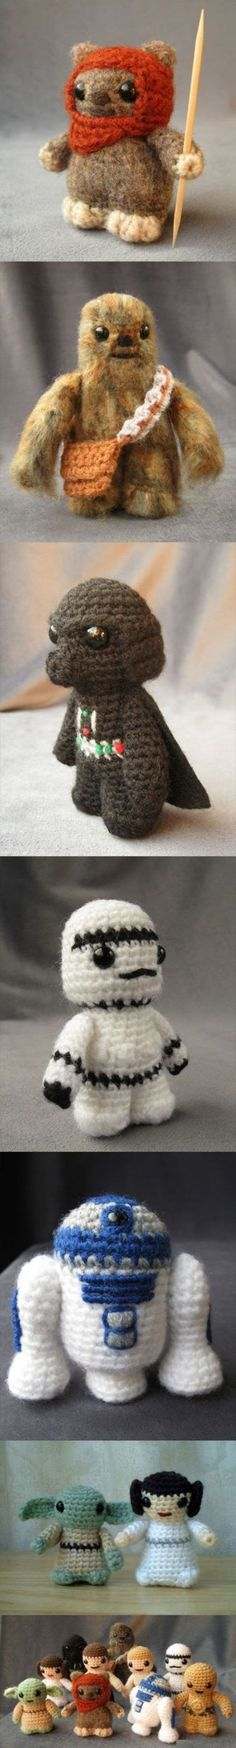 I <3 Star Wars, and I really need to learn to knit